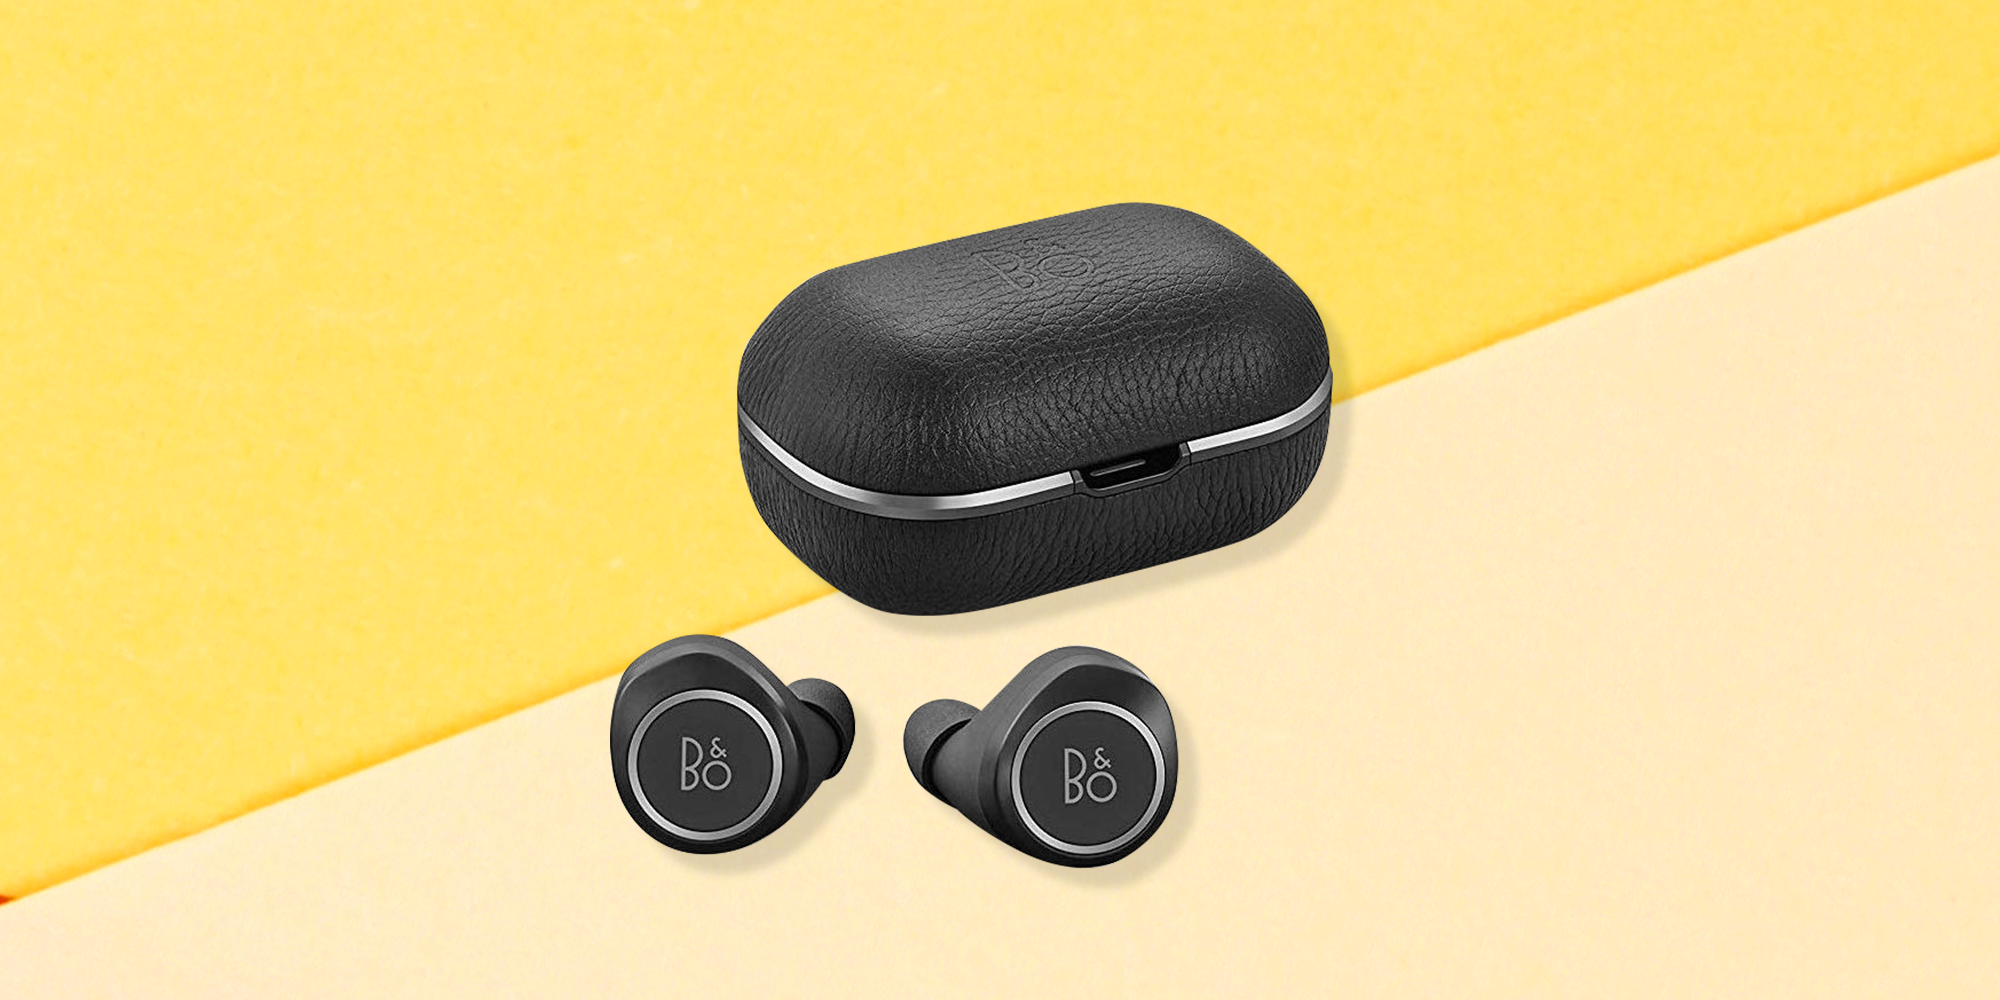 Bang & Olufsen Earbud Headphones Are On Sale On Amazon For $100 Off